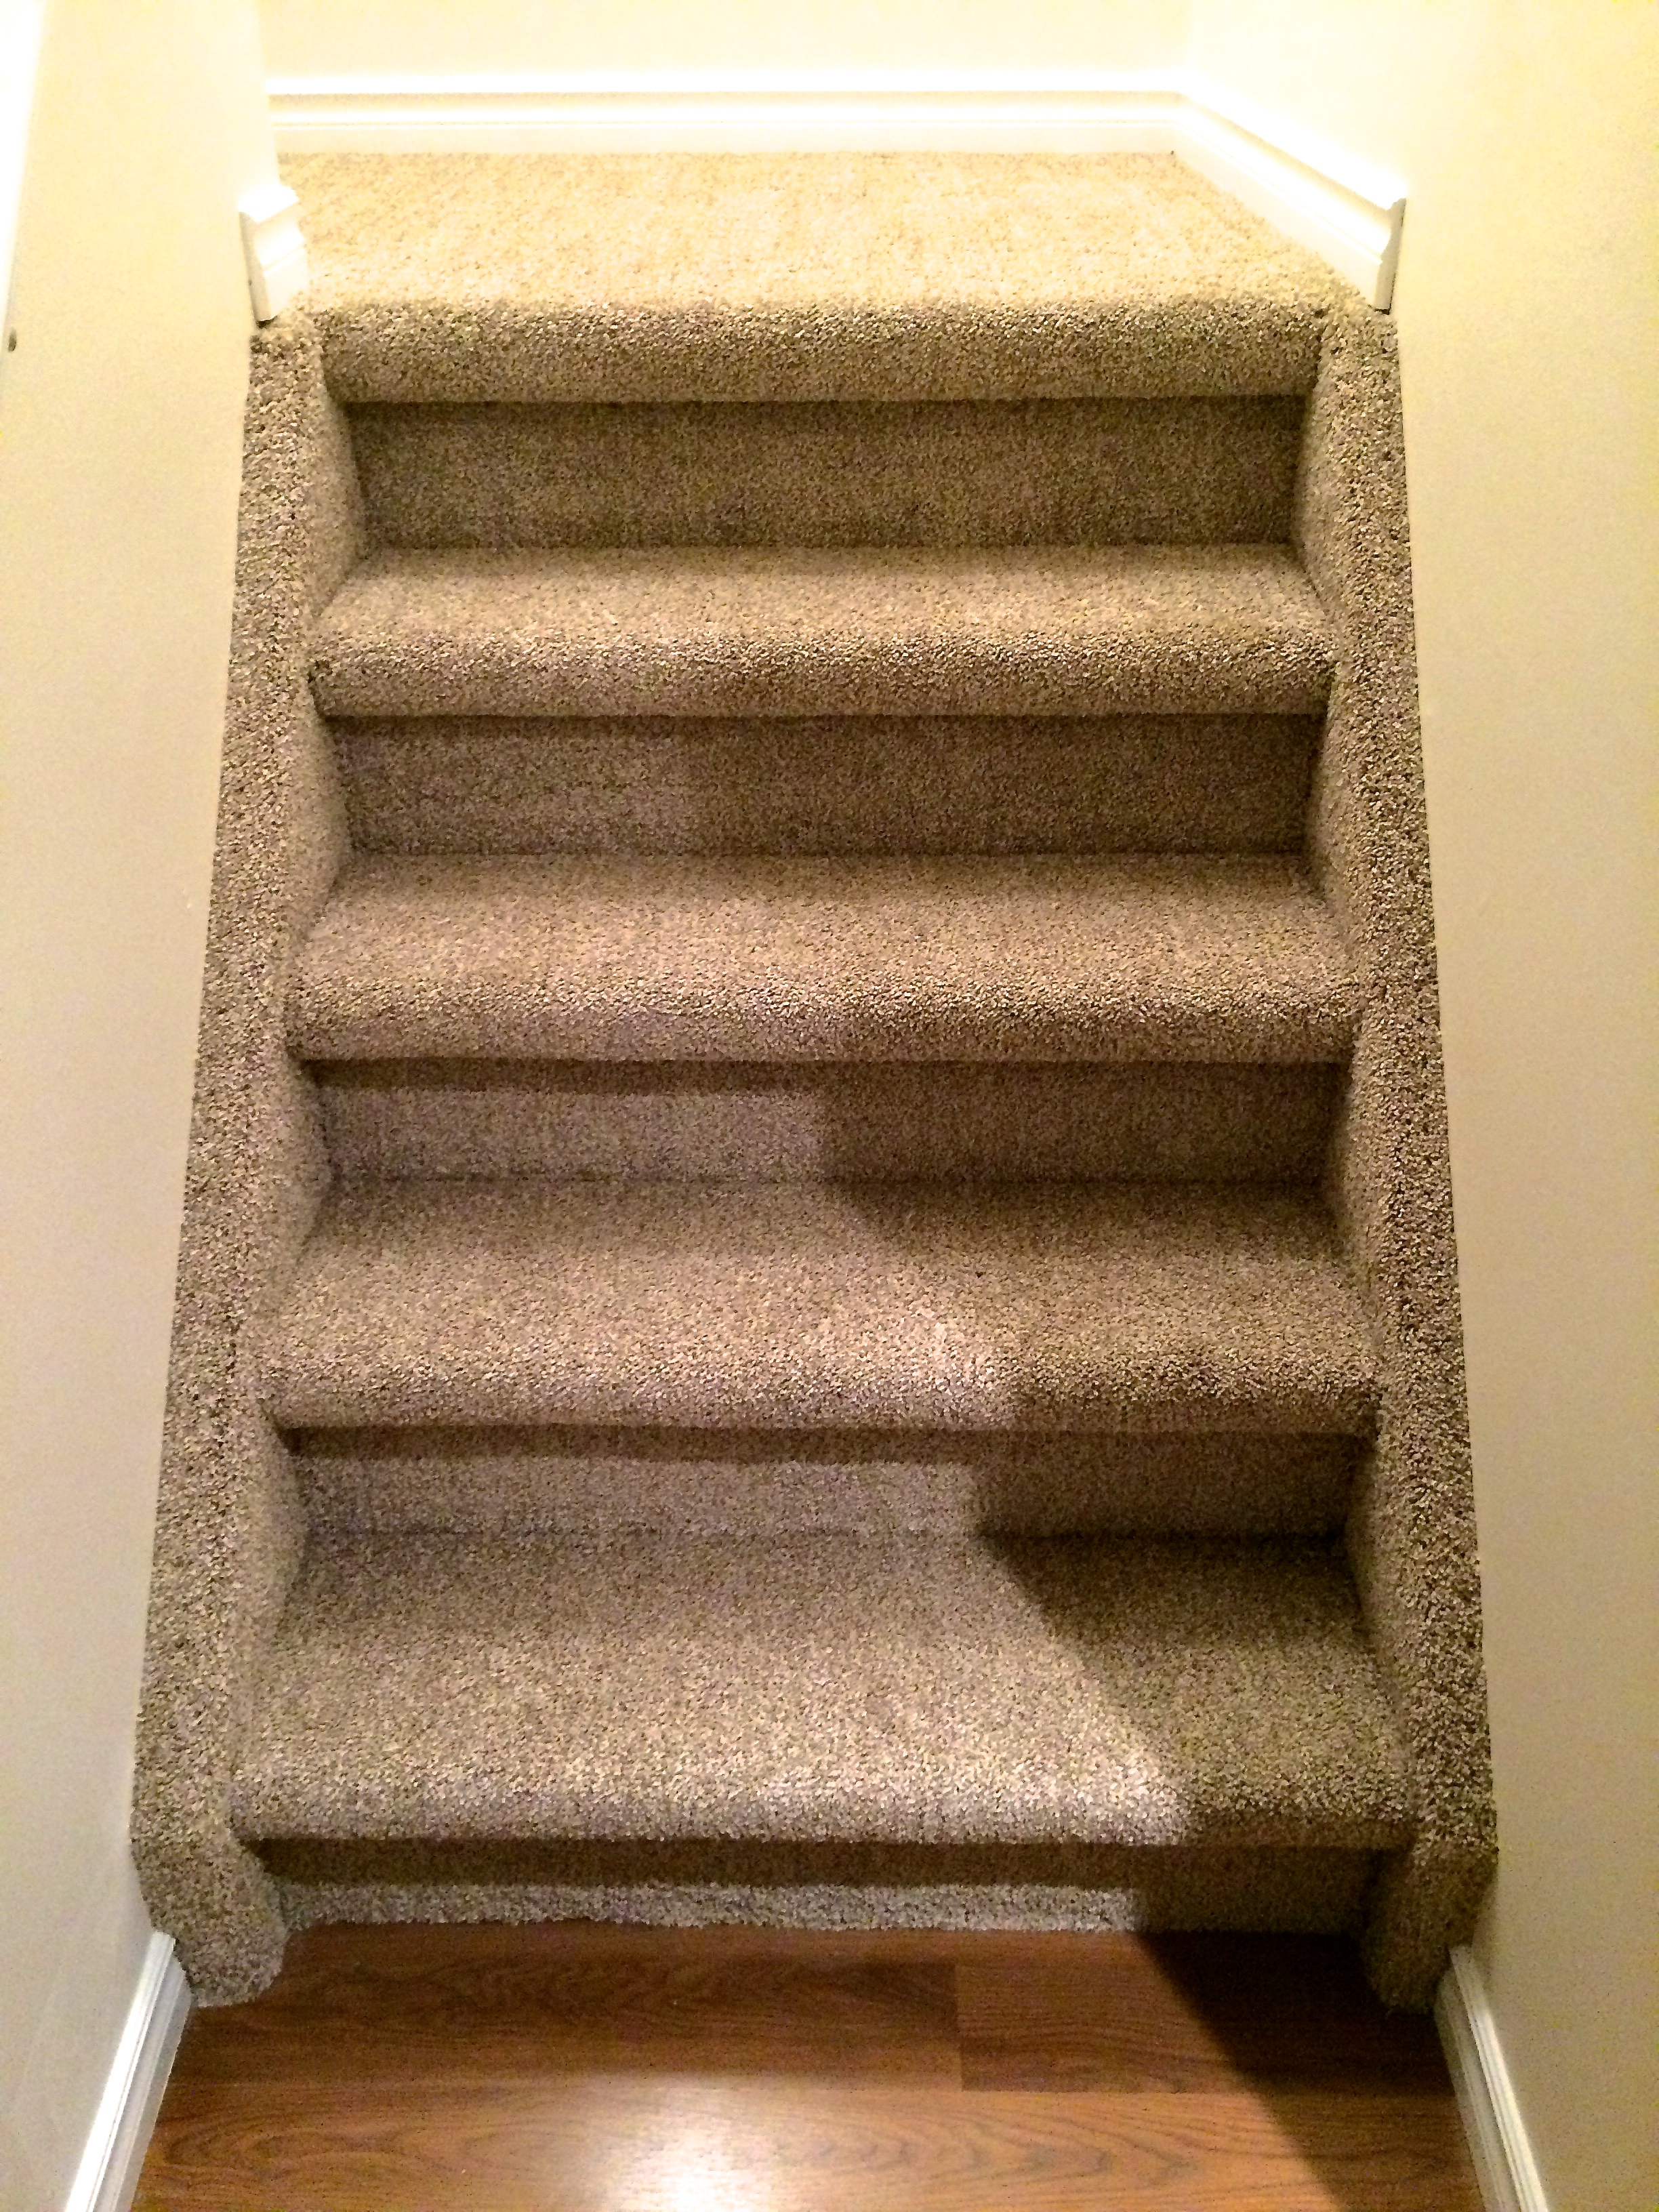 Boxed Stair with Stringers